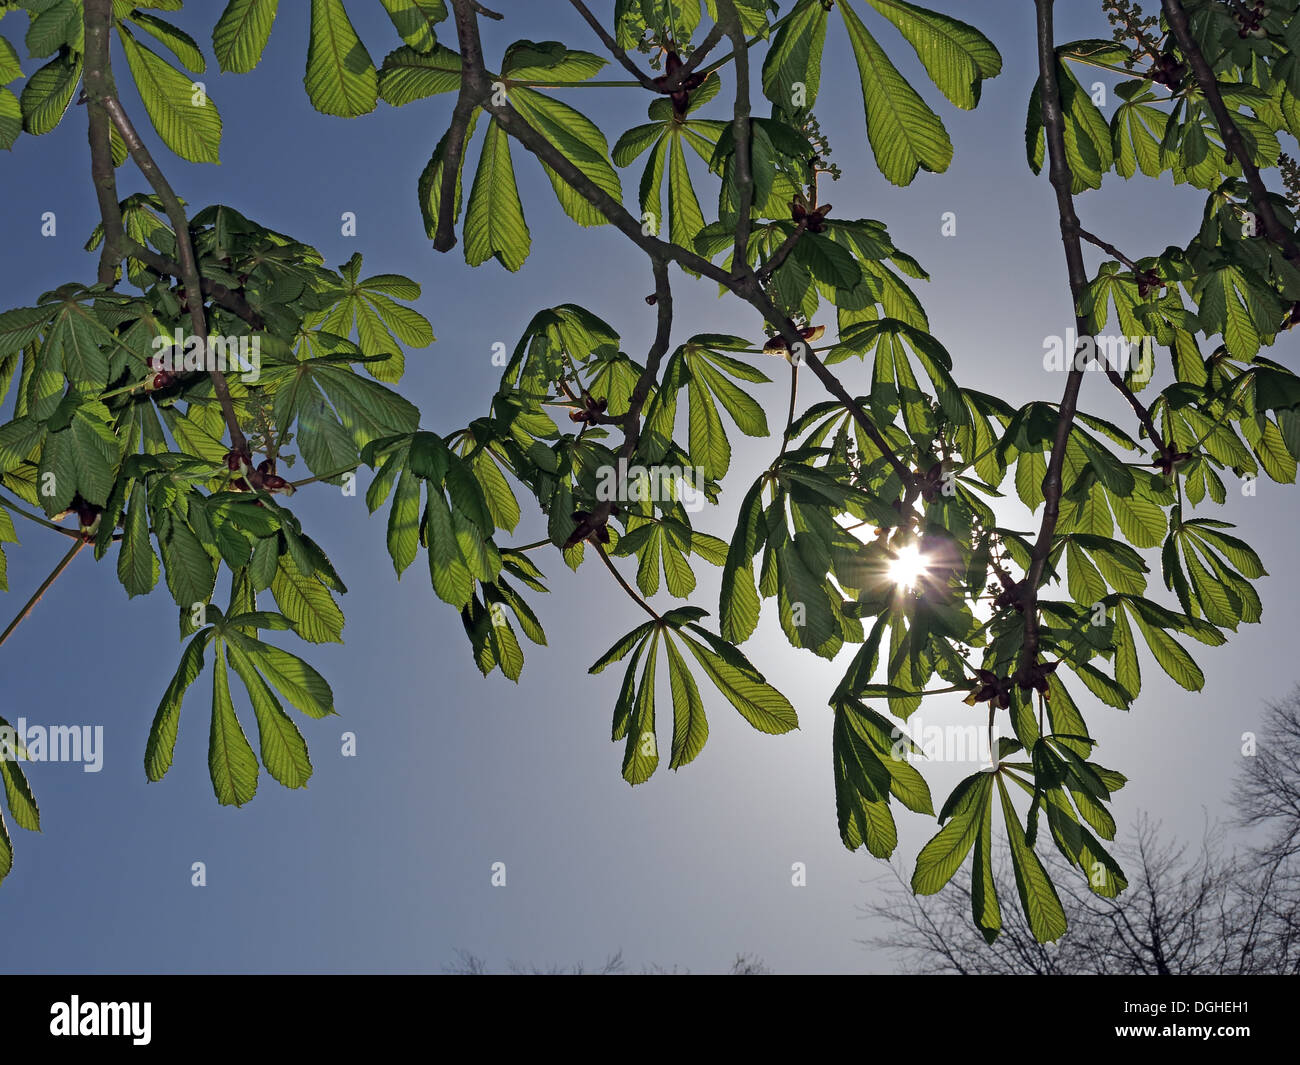 in,spring,springtime,light,behind,young,fresh,life,revive,life,plant,tree,Horse Chestnut,with sun behind,Aesculus hippocastanum,Coming alive,GoTonySmith,@HotpixUK,Buy Pictures of,Buy Images Of,Images of,Stock Images